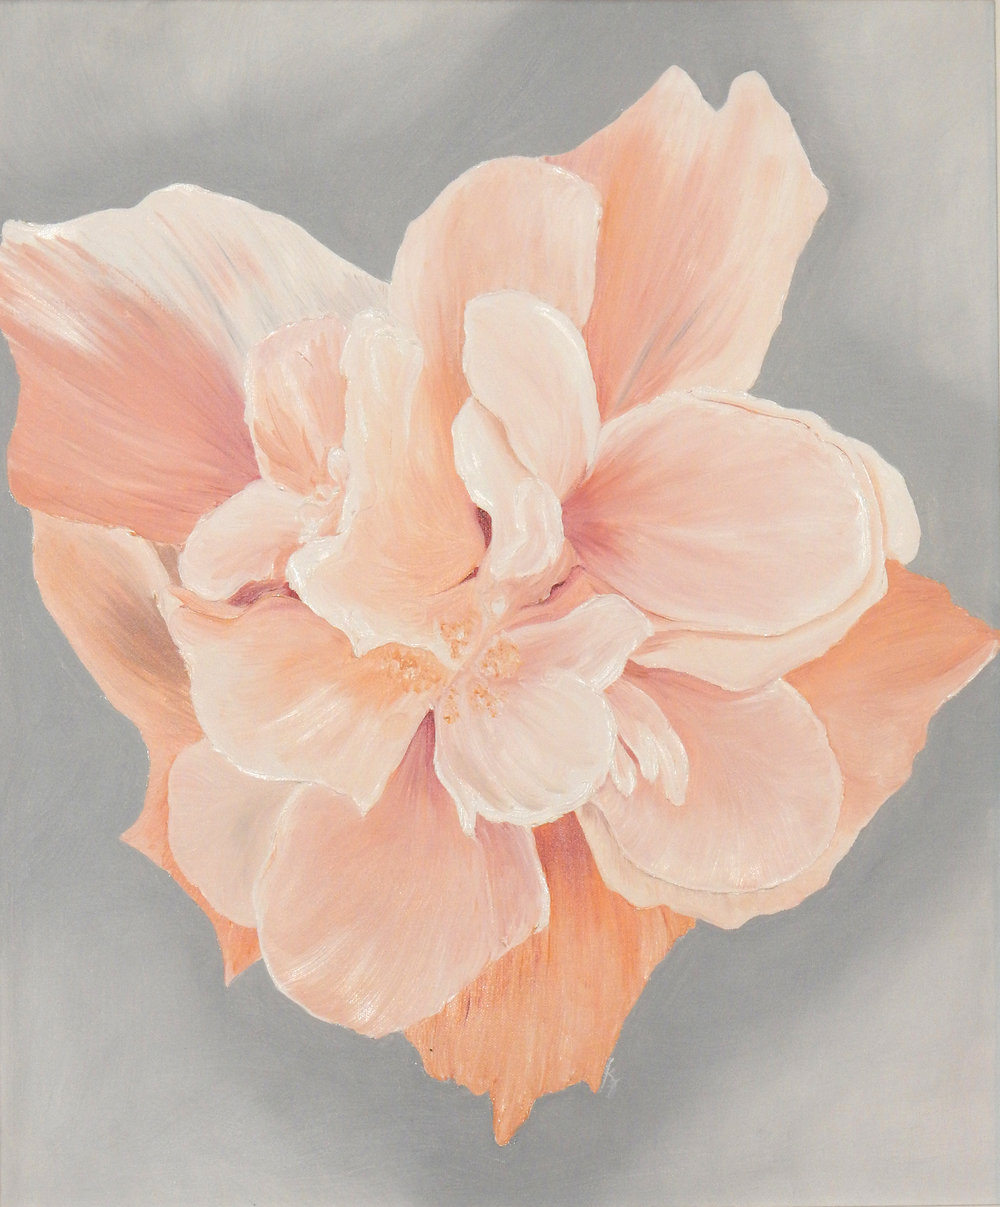 Peach Double Hibiscus  2017 Oil on canvas 24 x 20 inches